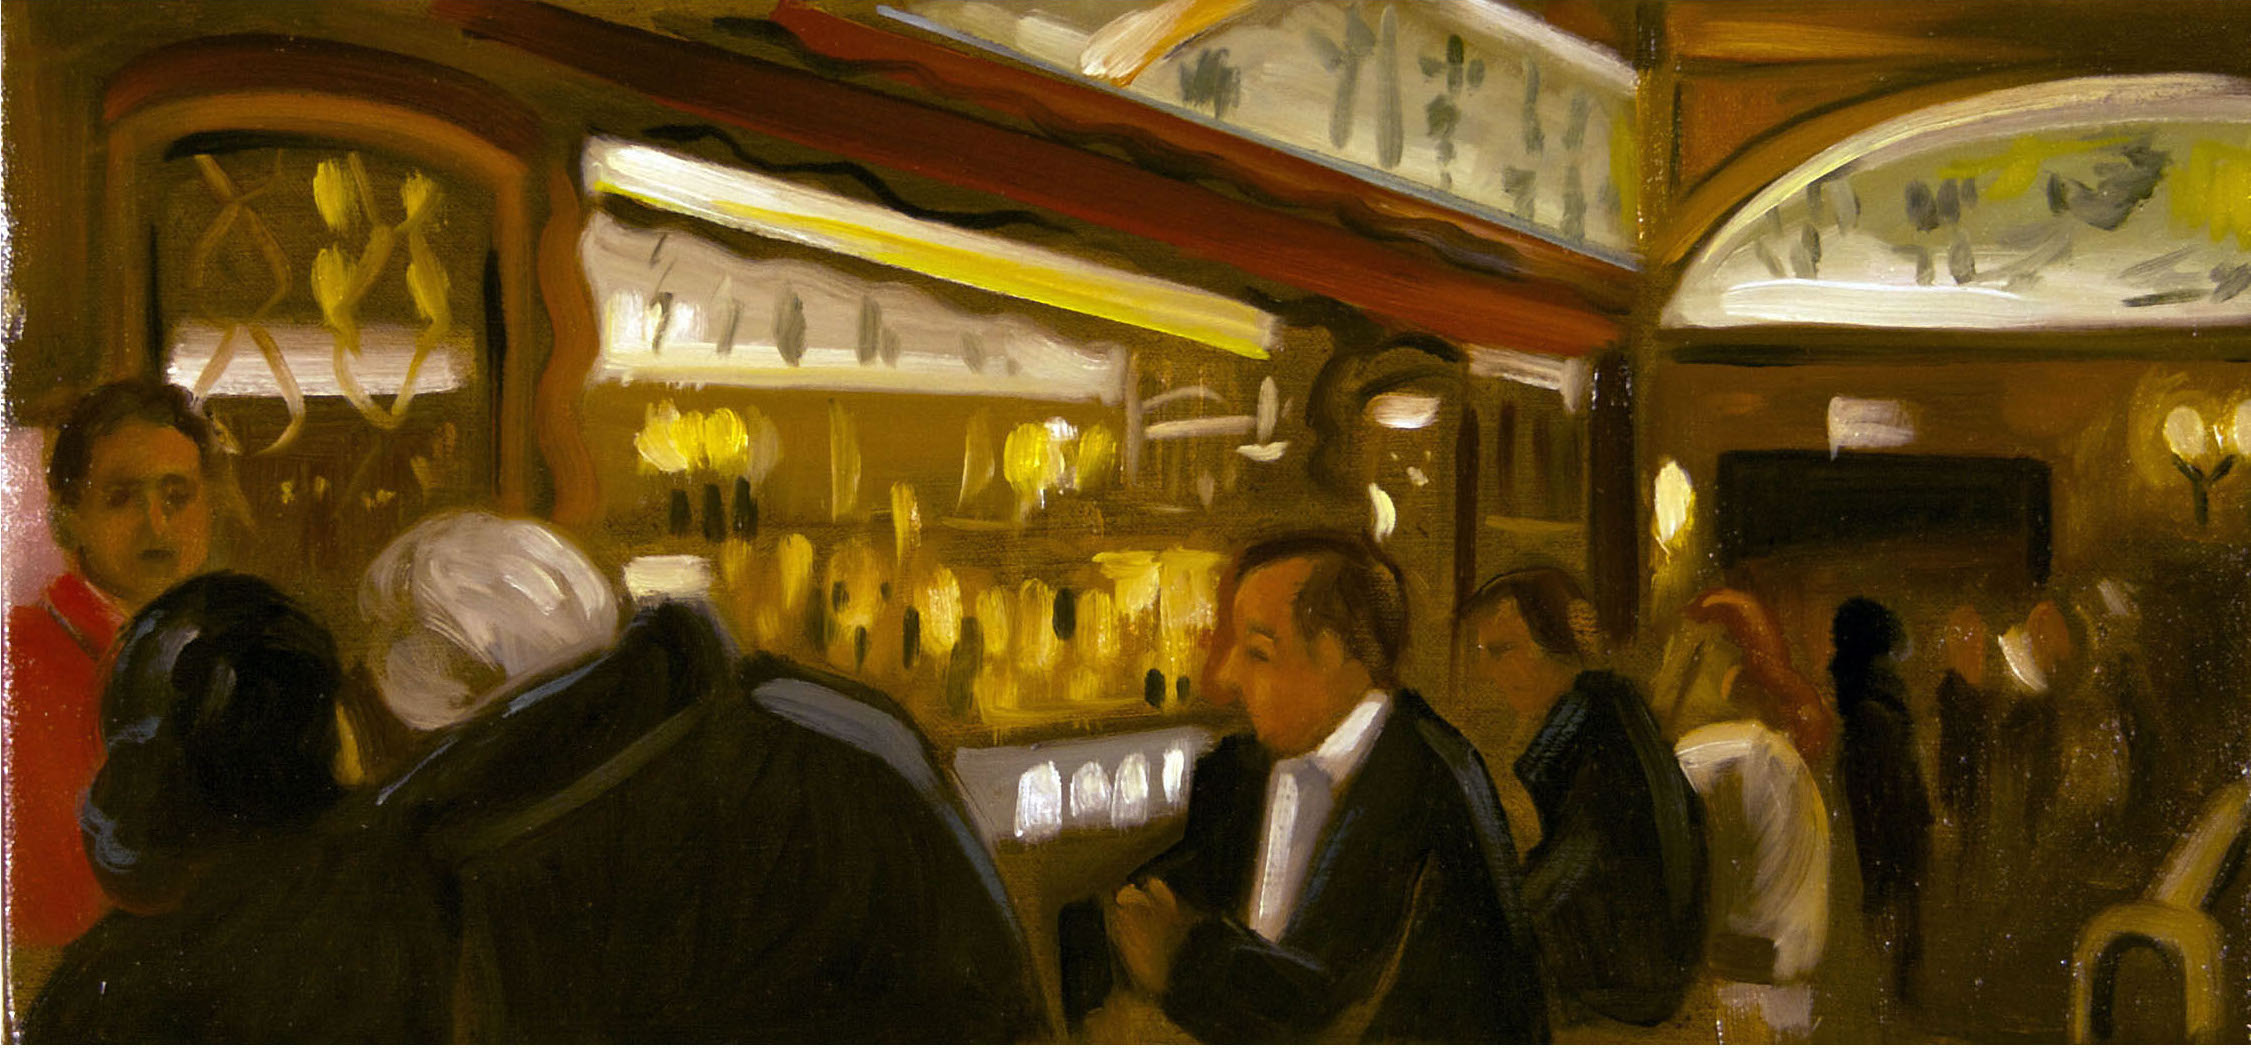 Raul Guerrero  Musso and Frank Grill: Hollywood, 2013  Oil on linen Framed Dimensions: 8 x 16 inches (20.3 x 40.6 centimeters)